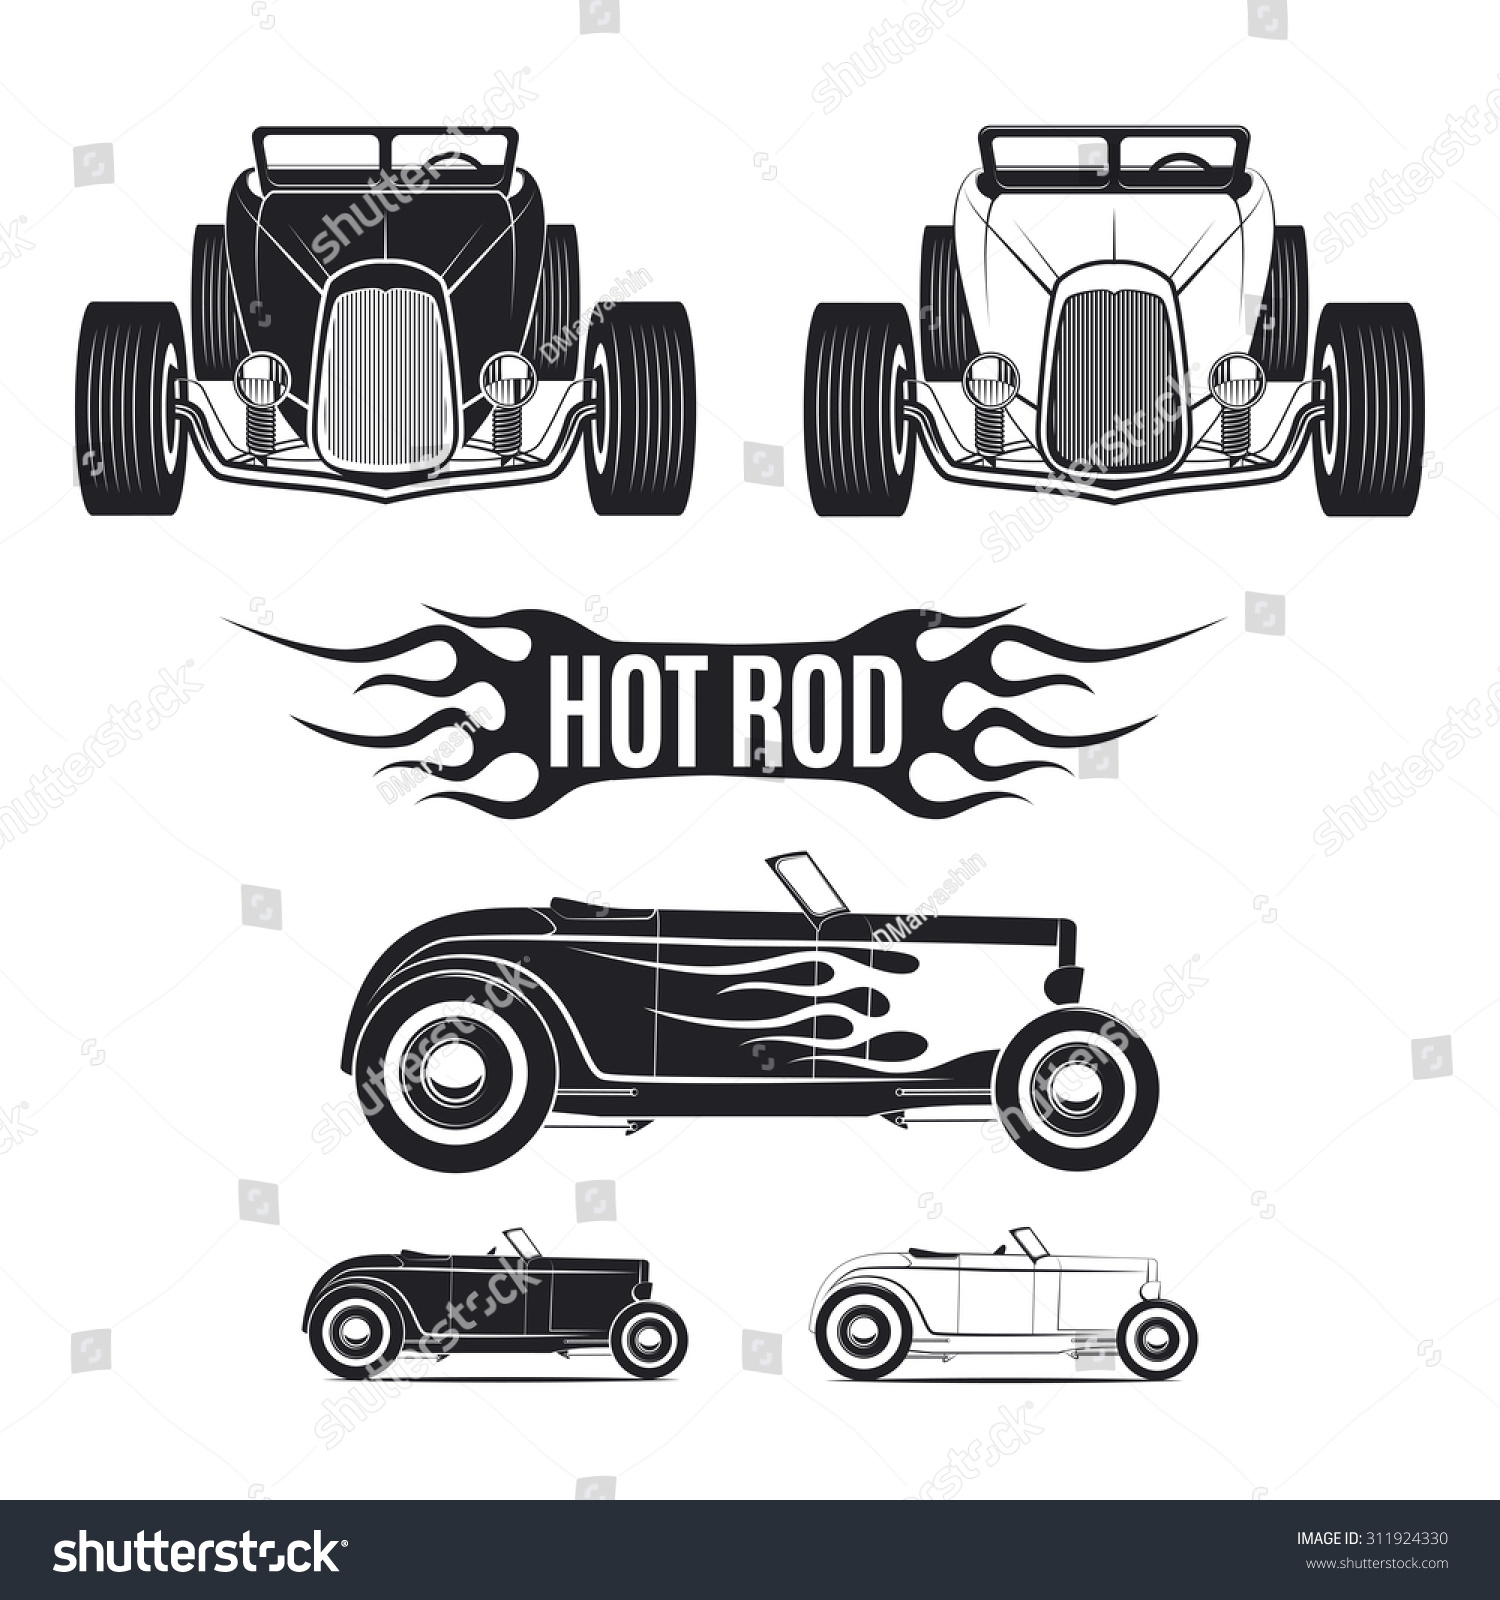 hot rod car illustrations isolated on imagem vetorial de. Black Bedroom Furniture Sets. Home Design Ideas